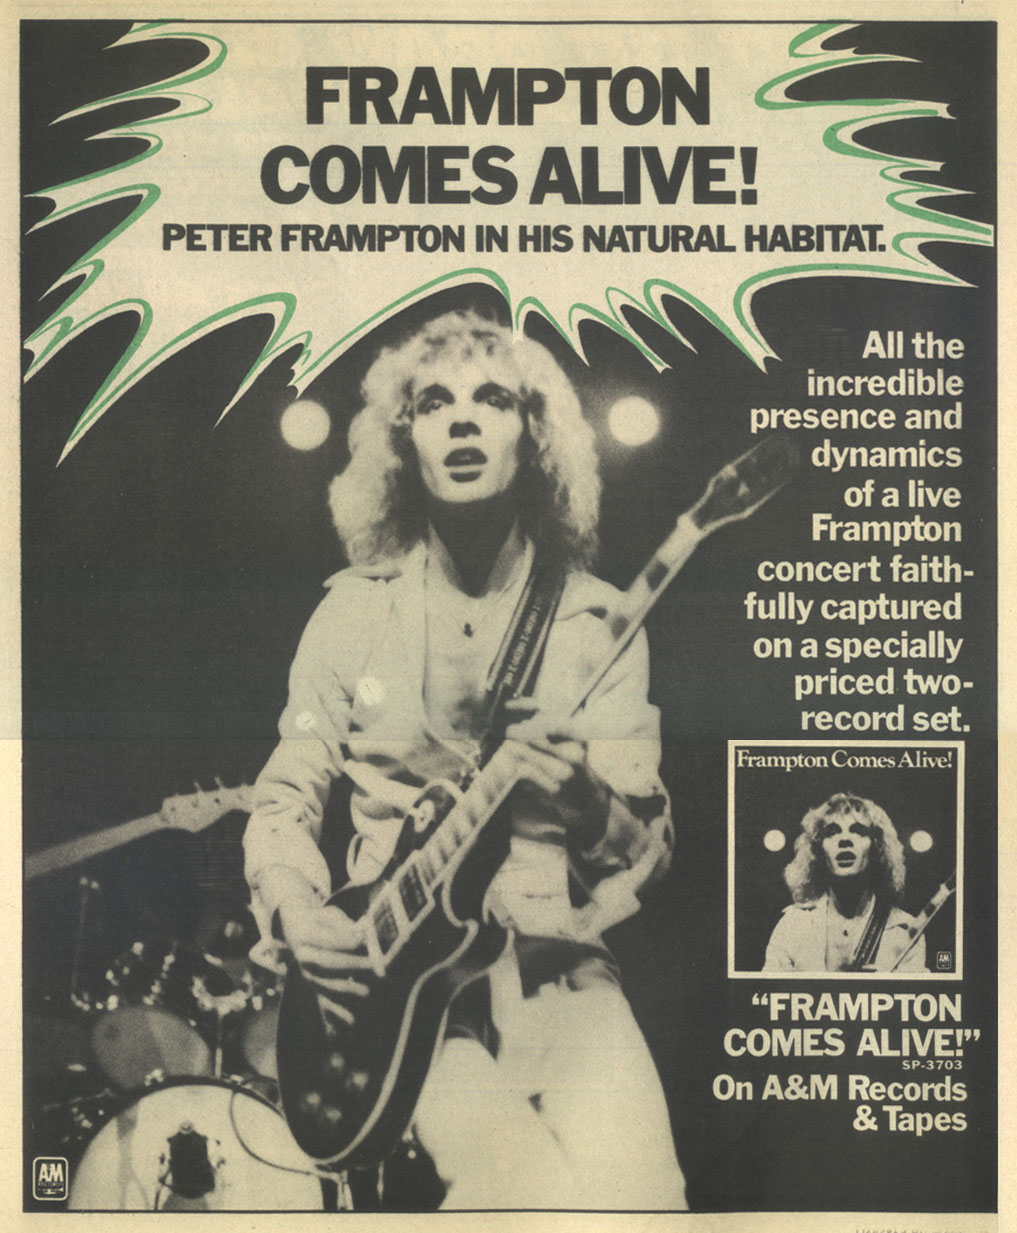 oaaa frampton Frampton Comes Alive! Is Alive and Well 40 Years Later